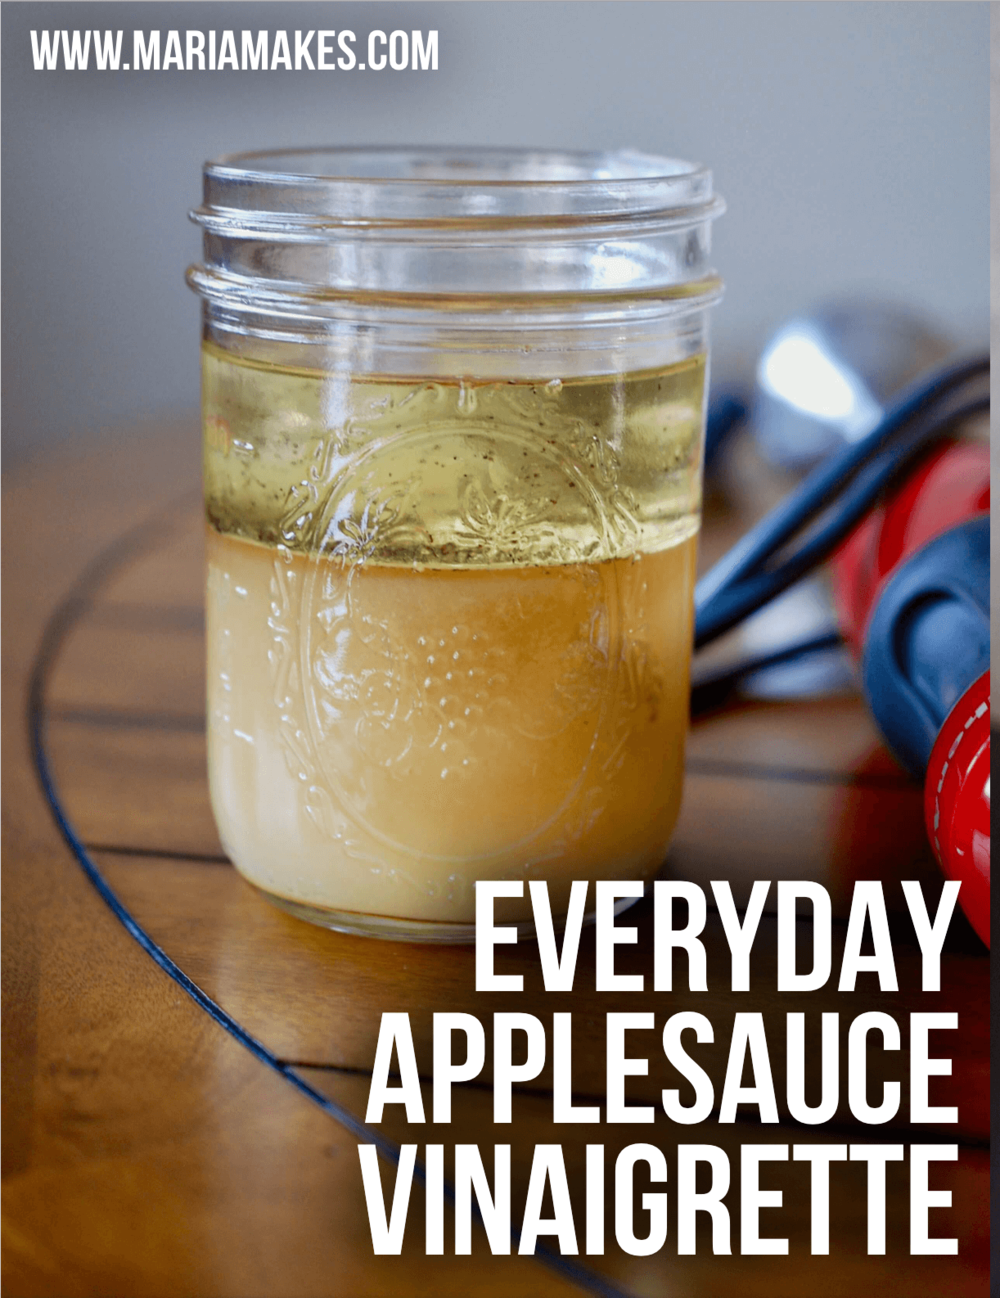 Everyday Applesauce Vinaigrette – Maria Makes: Super easy salad dressing made with applesauce! Versatile, quick to make, and naturally sweetened. #whole30 #paleo